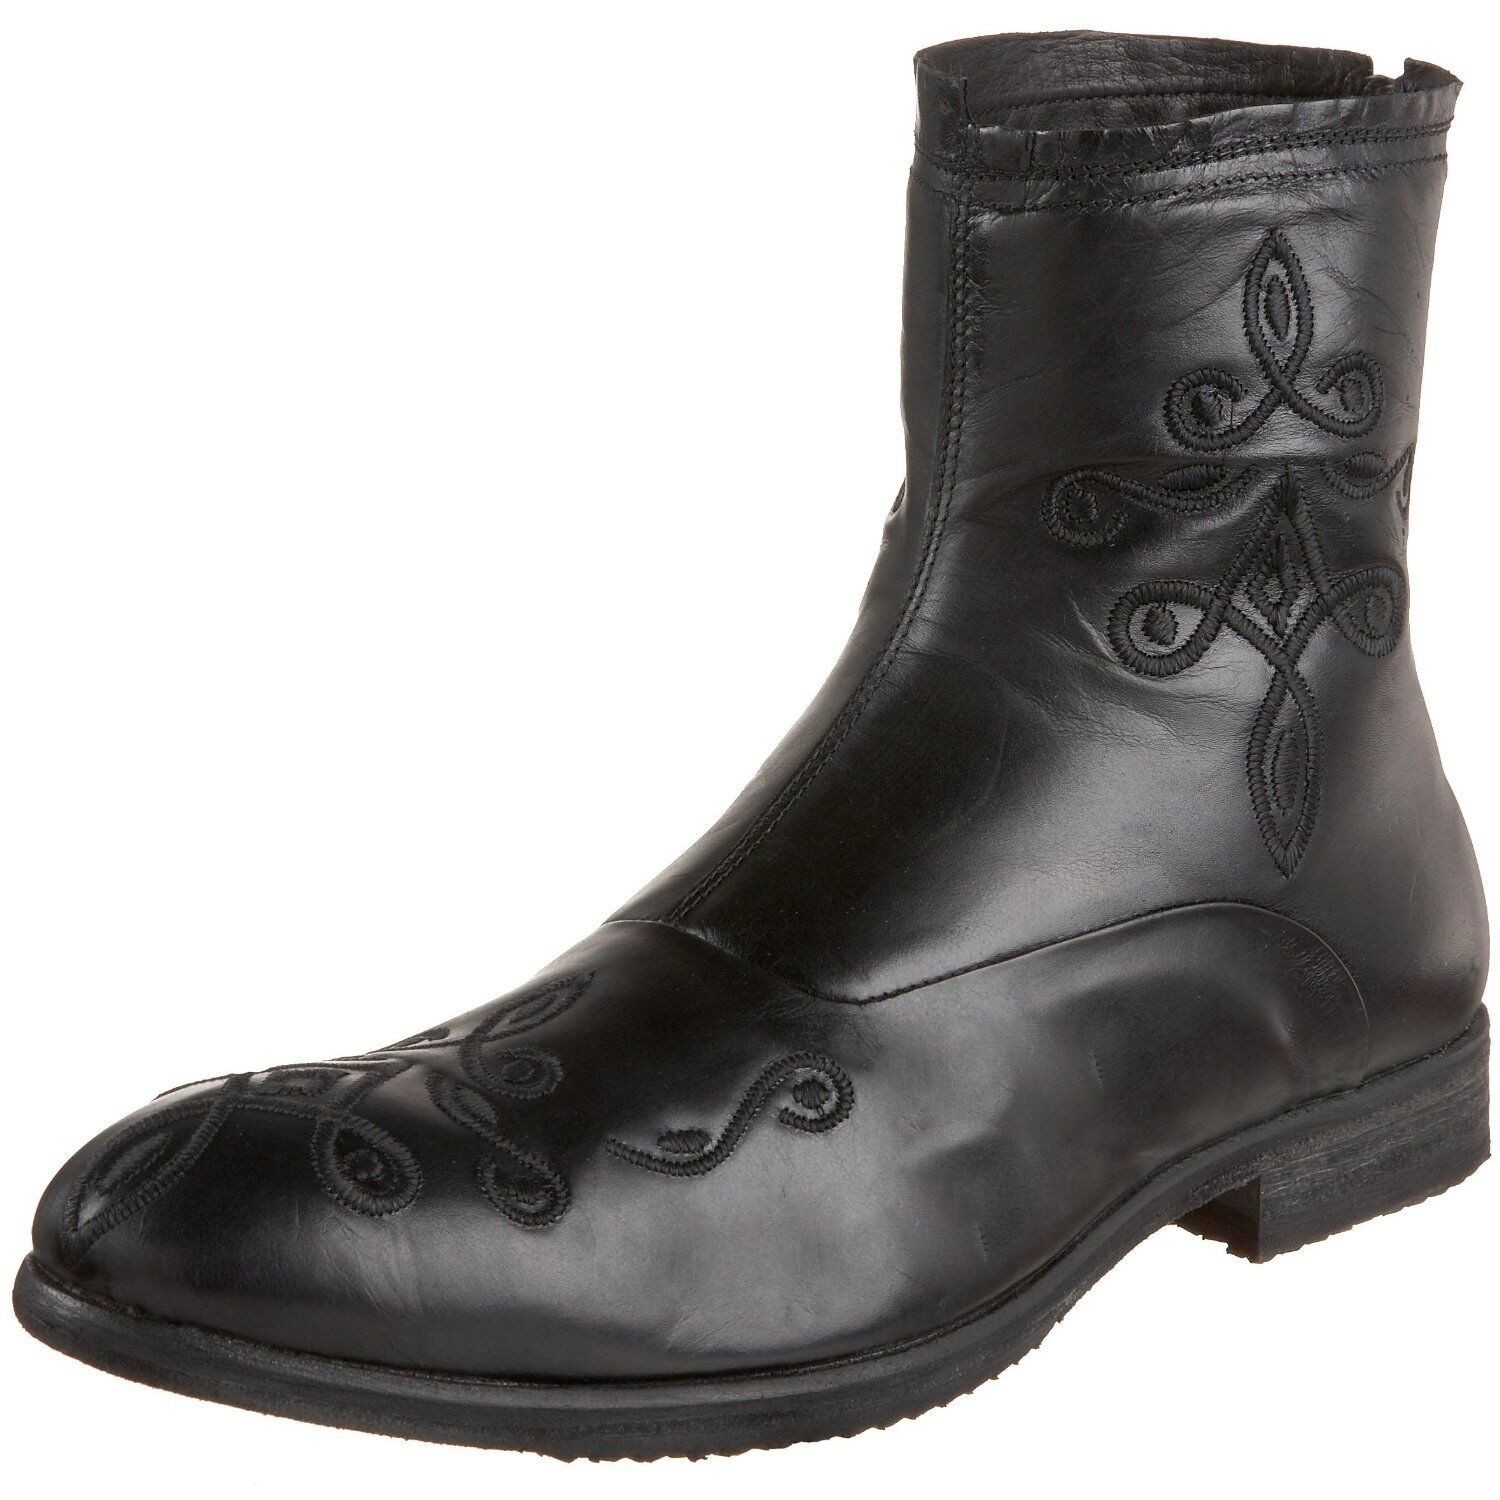 NIB AREA FORTE 6180 COAT BOOTS  MADE IN ITALY RETAIL OVER  300.00